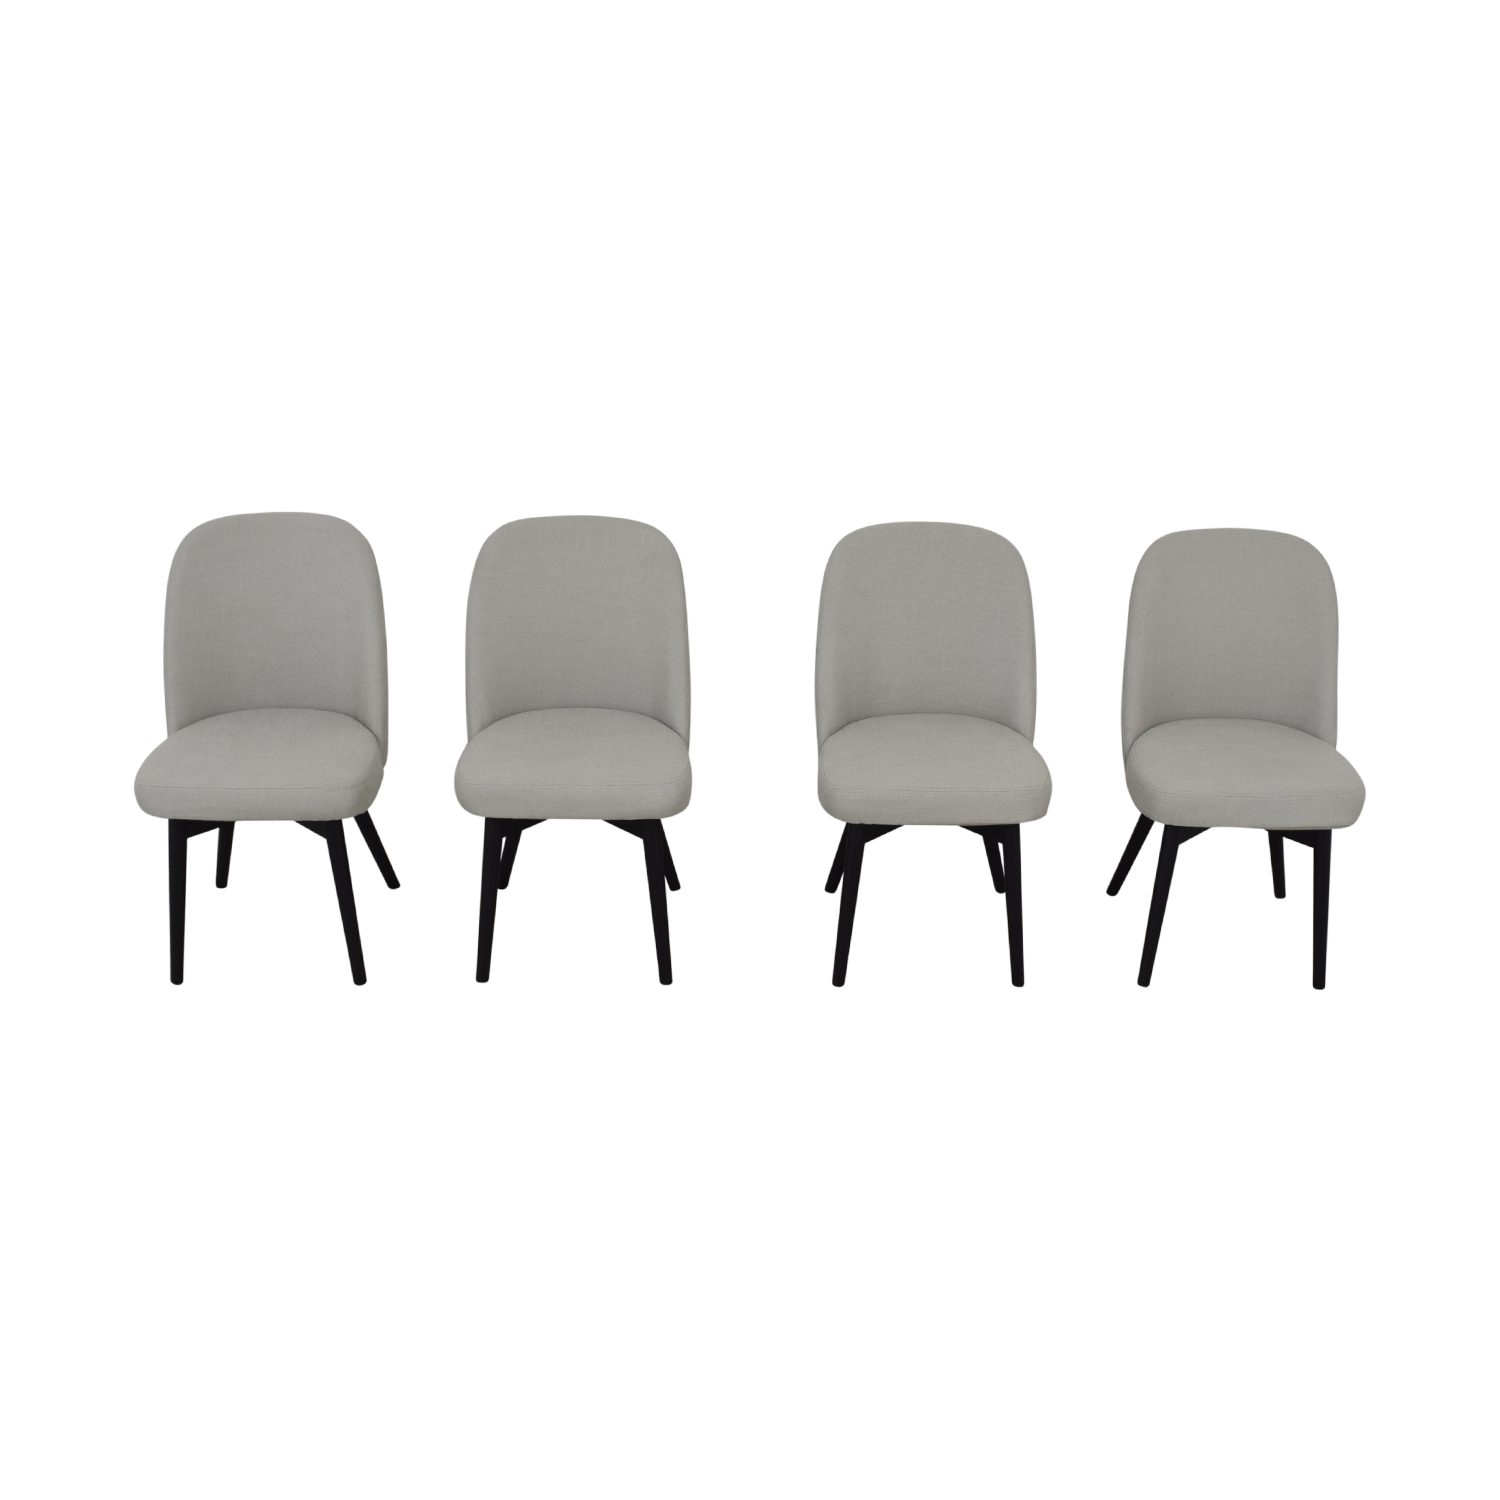 Interior Define Dylan Grey Dining Chairs on sale